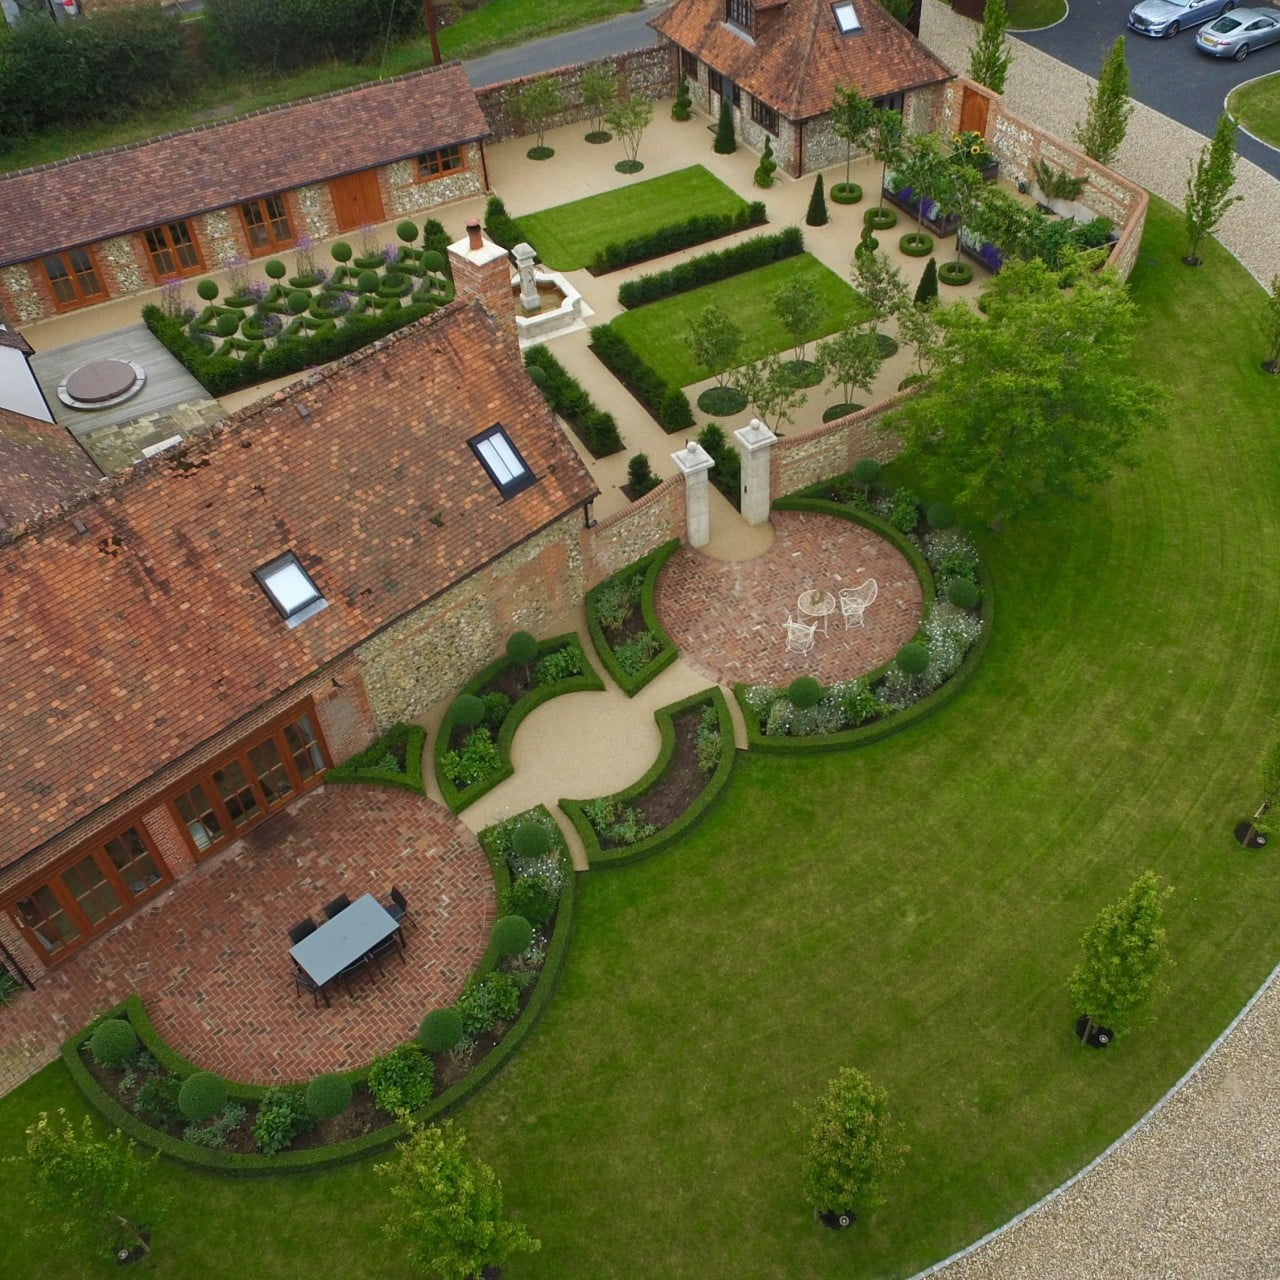 Birds eye view of the walled garden near henley on thames